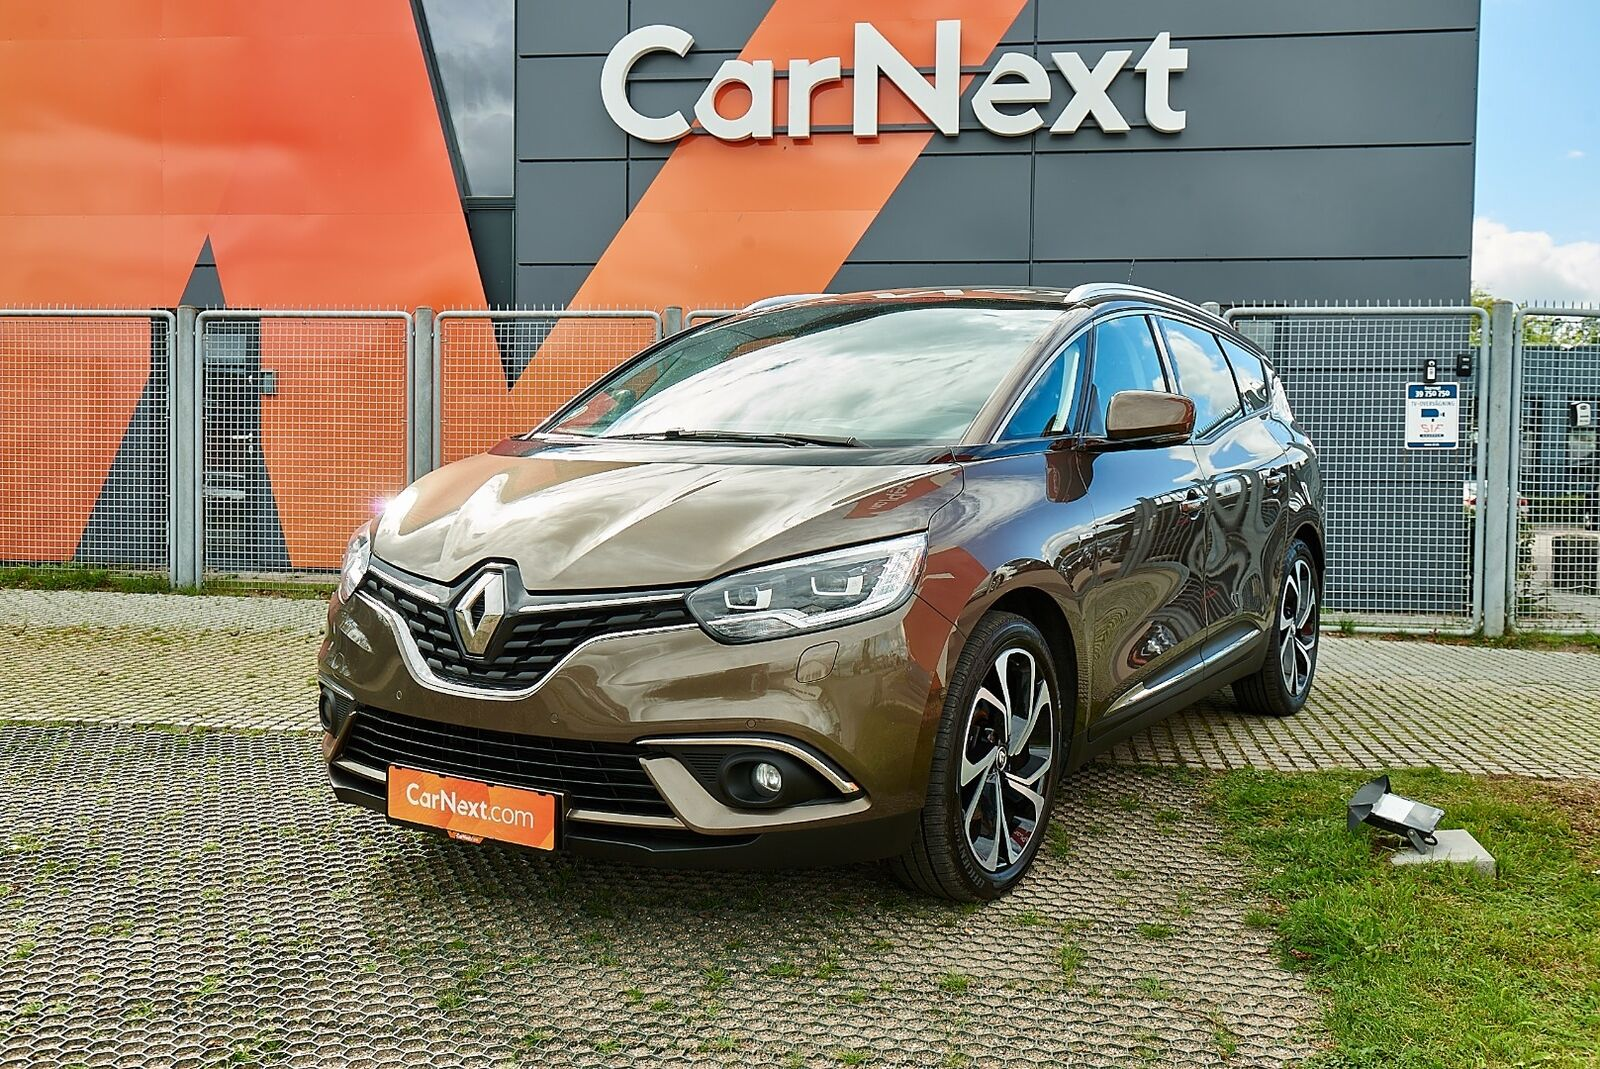 Renault Grand Scenic IV 1,5 dCi 110 Bose Edition EDC 7prs 5d - 199.900 kr.